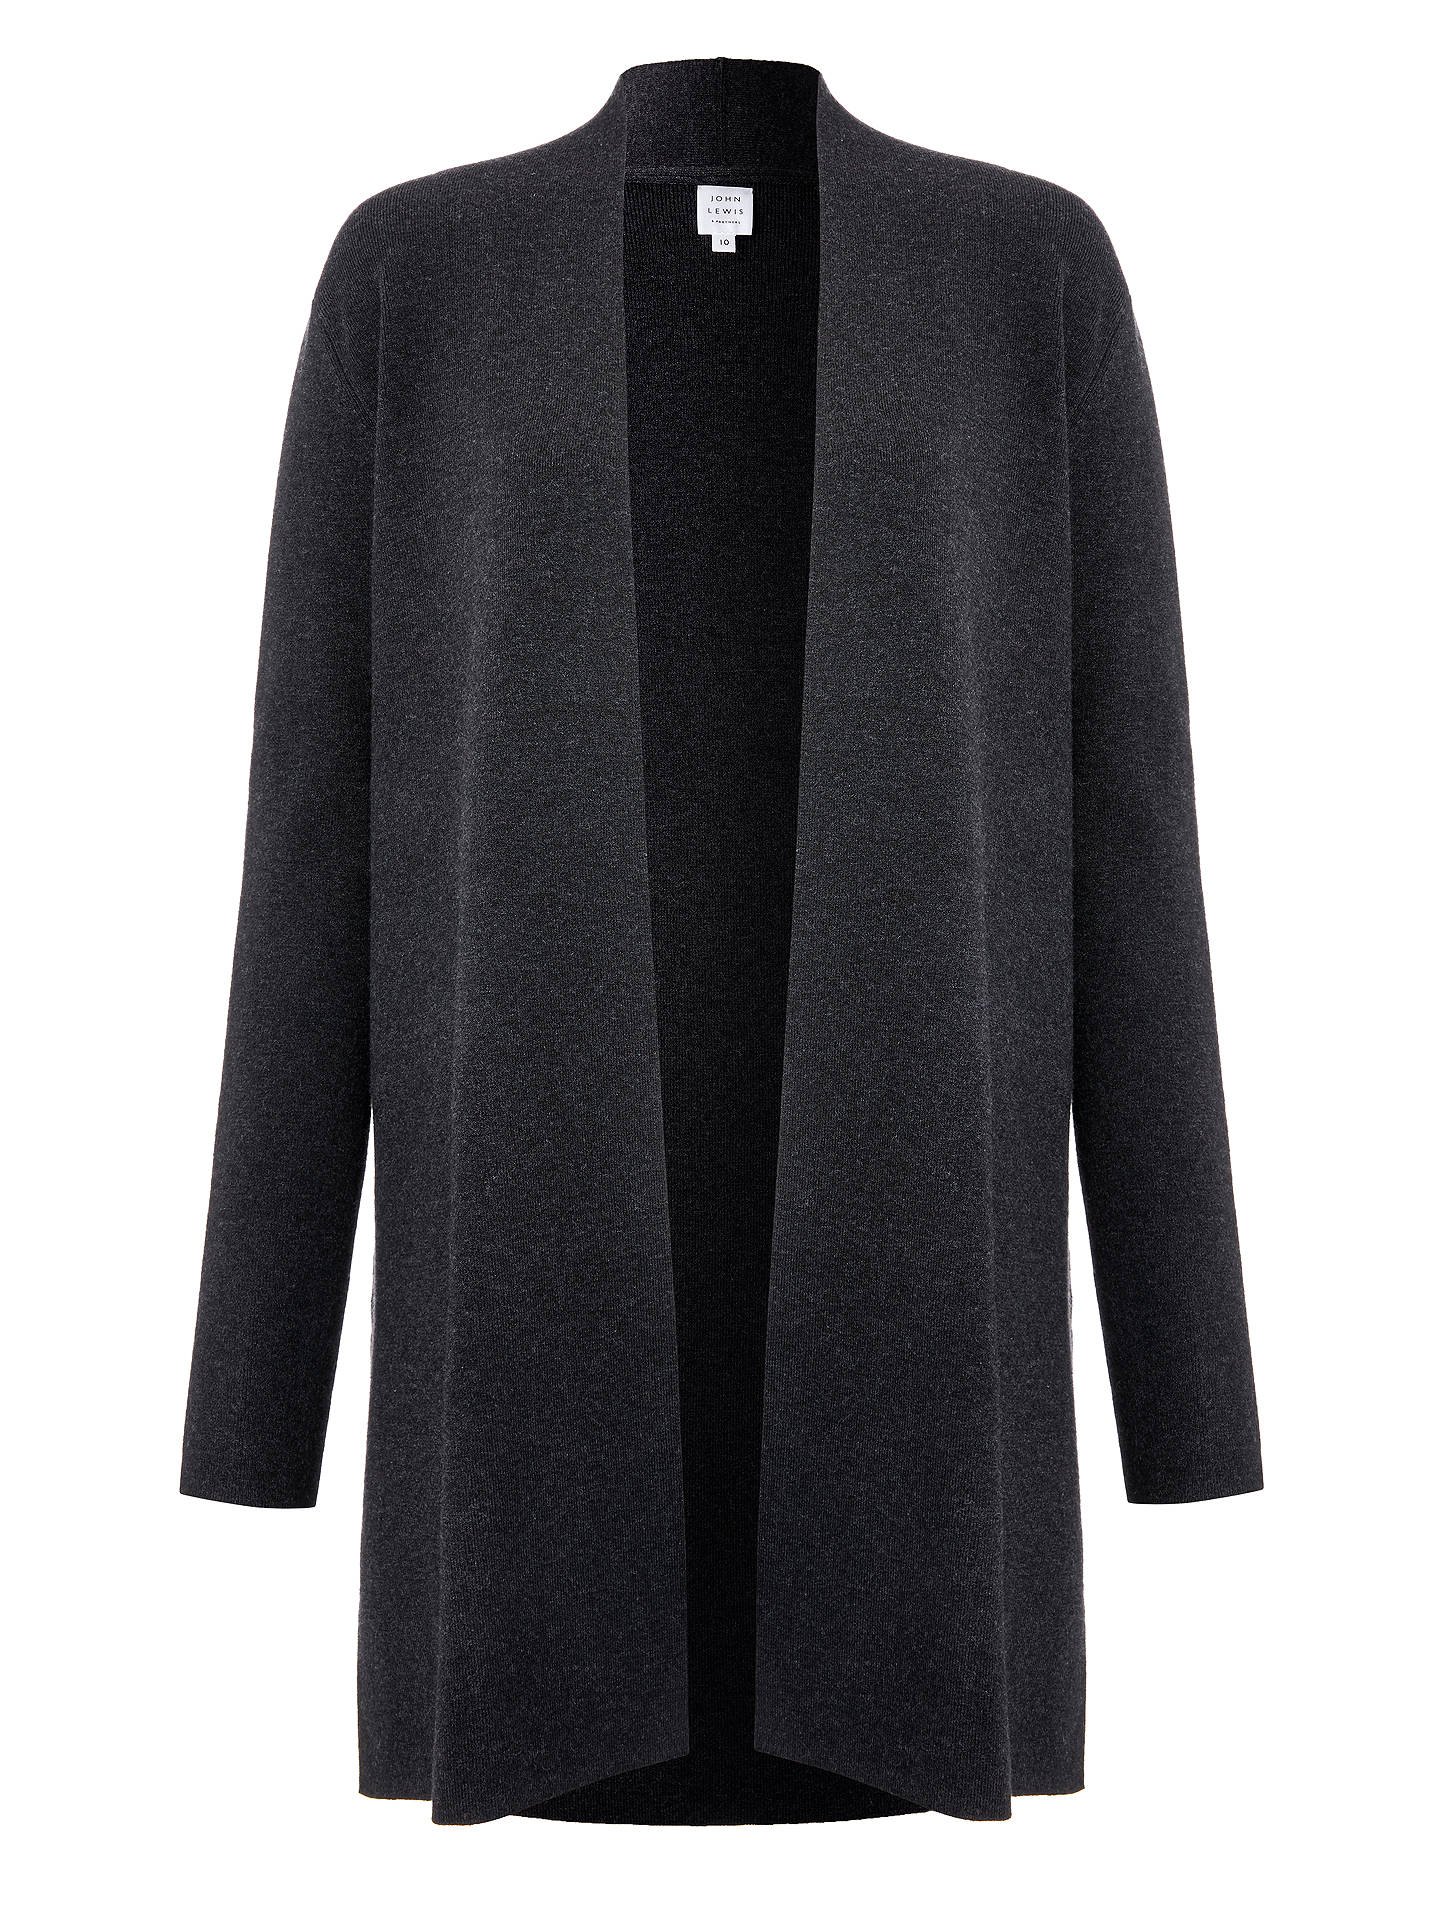 Buy John Lewis & Partners Edge to Edge Cardigan, Charcoal, 8 Online at johnlewis.com